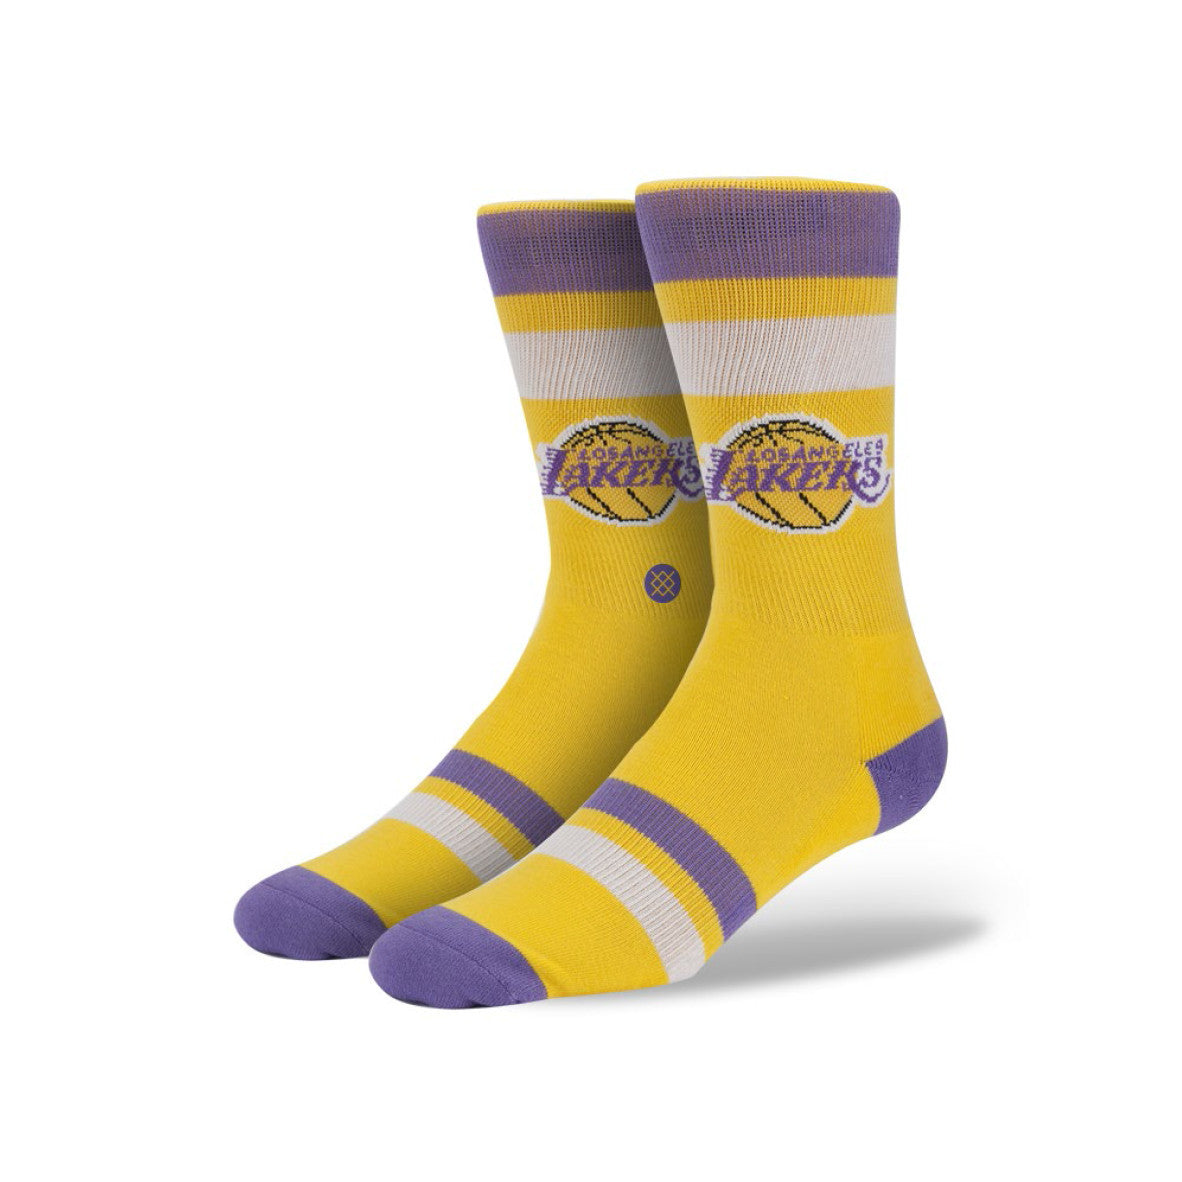 Socks Stance NBA Lakers